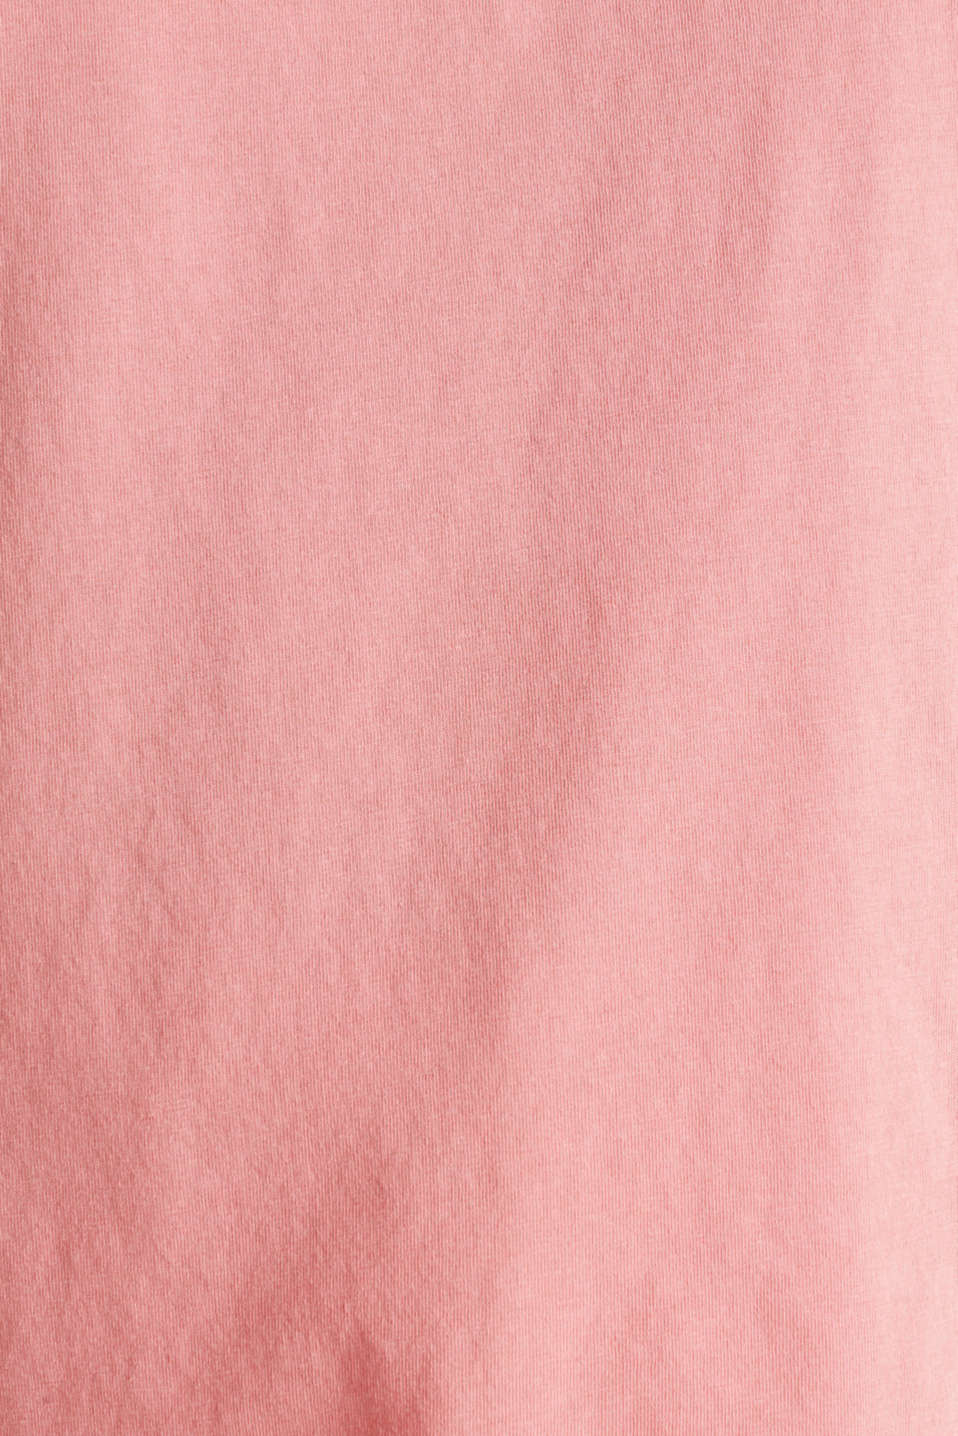 V-neck top, 100% cotton, CORAL 3, detail image number 4